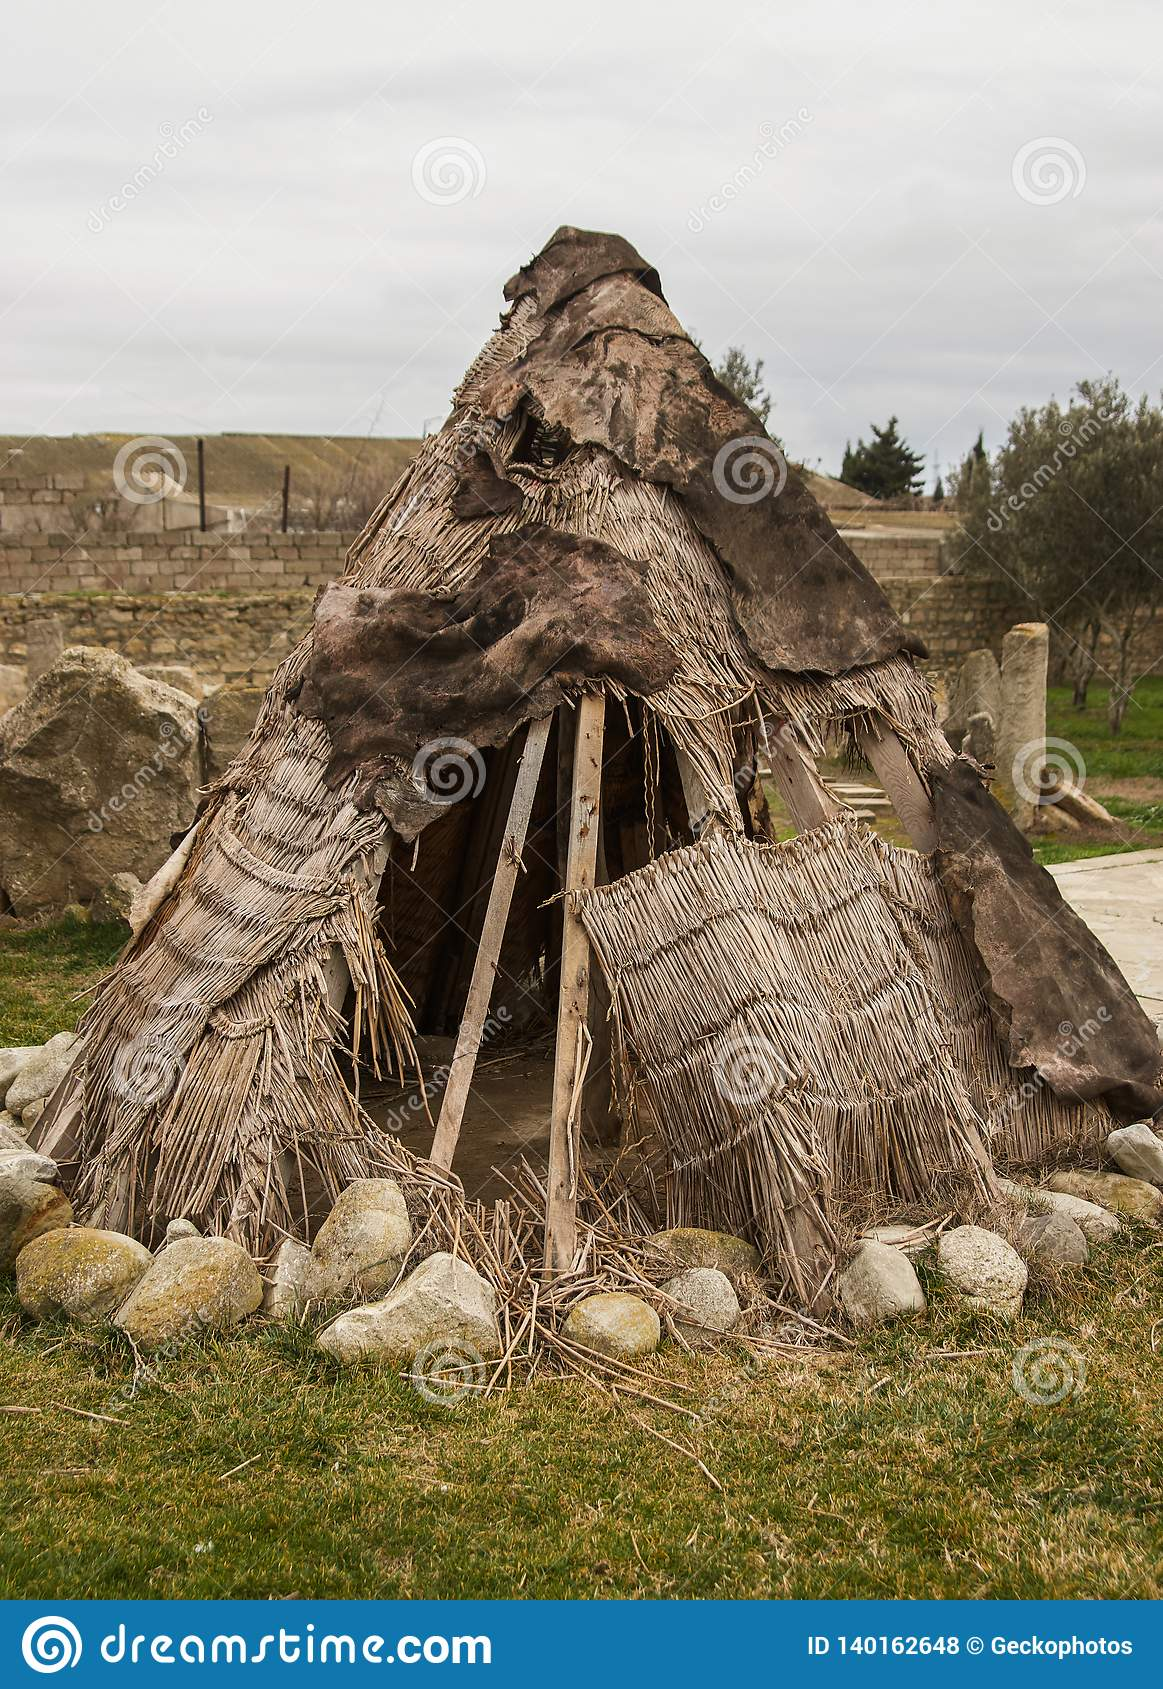 Ancient man hut. Teepee or wigwam tent house, outdoors